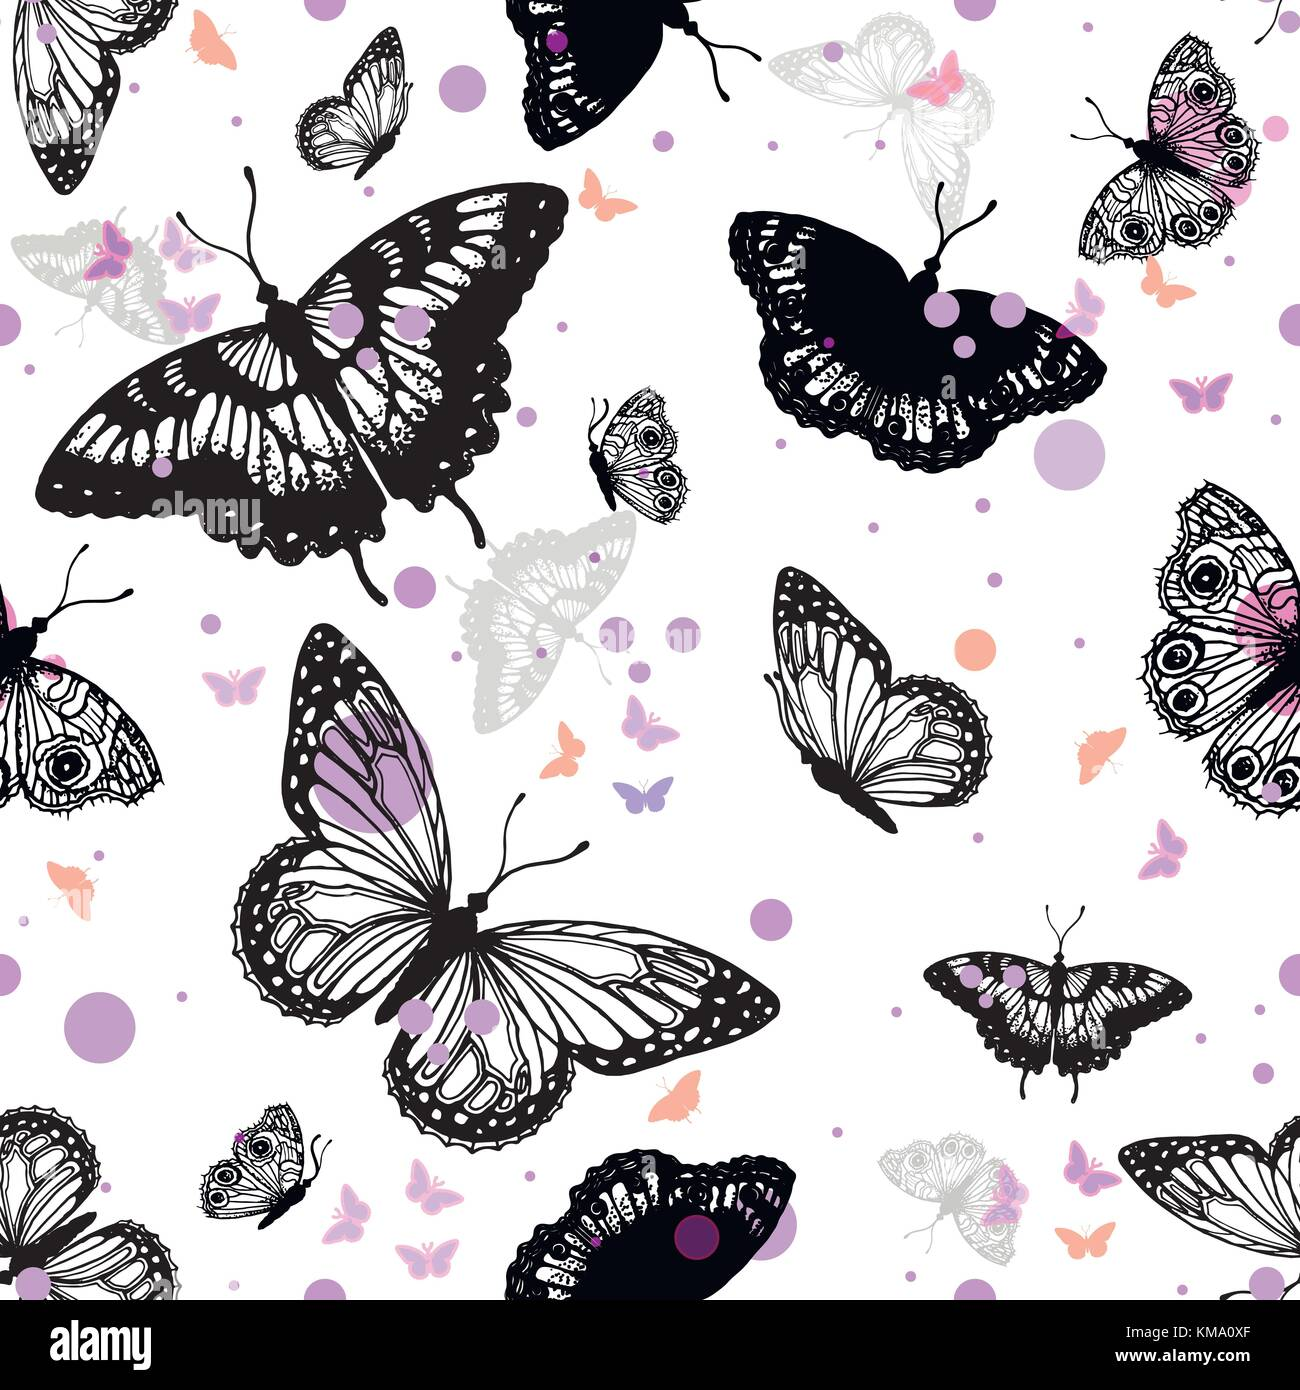 Seamless vector pattern of hand drawn sketch style butterflies. - Stock Image